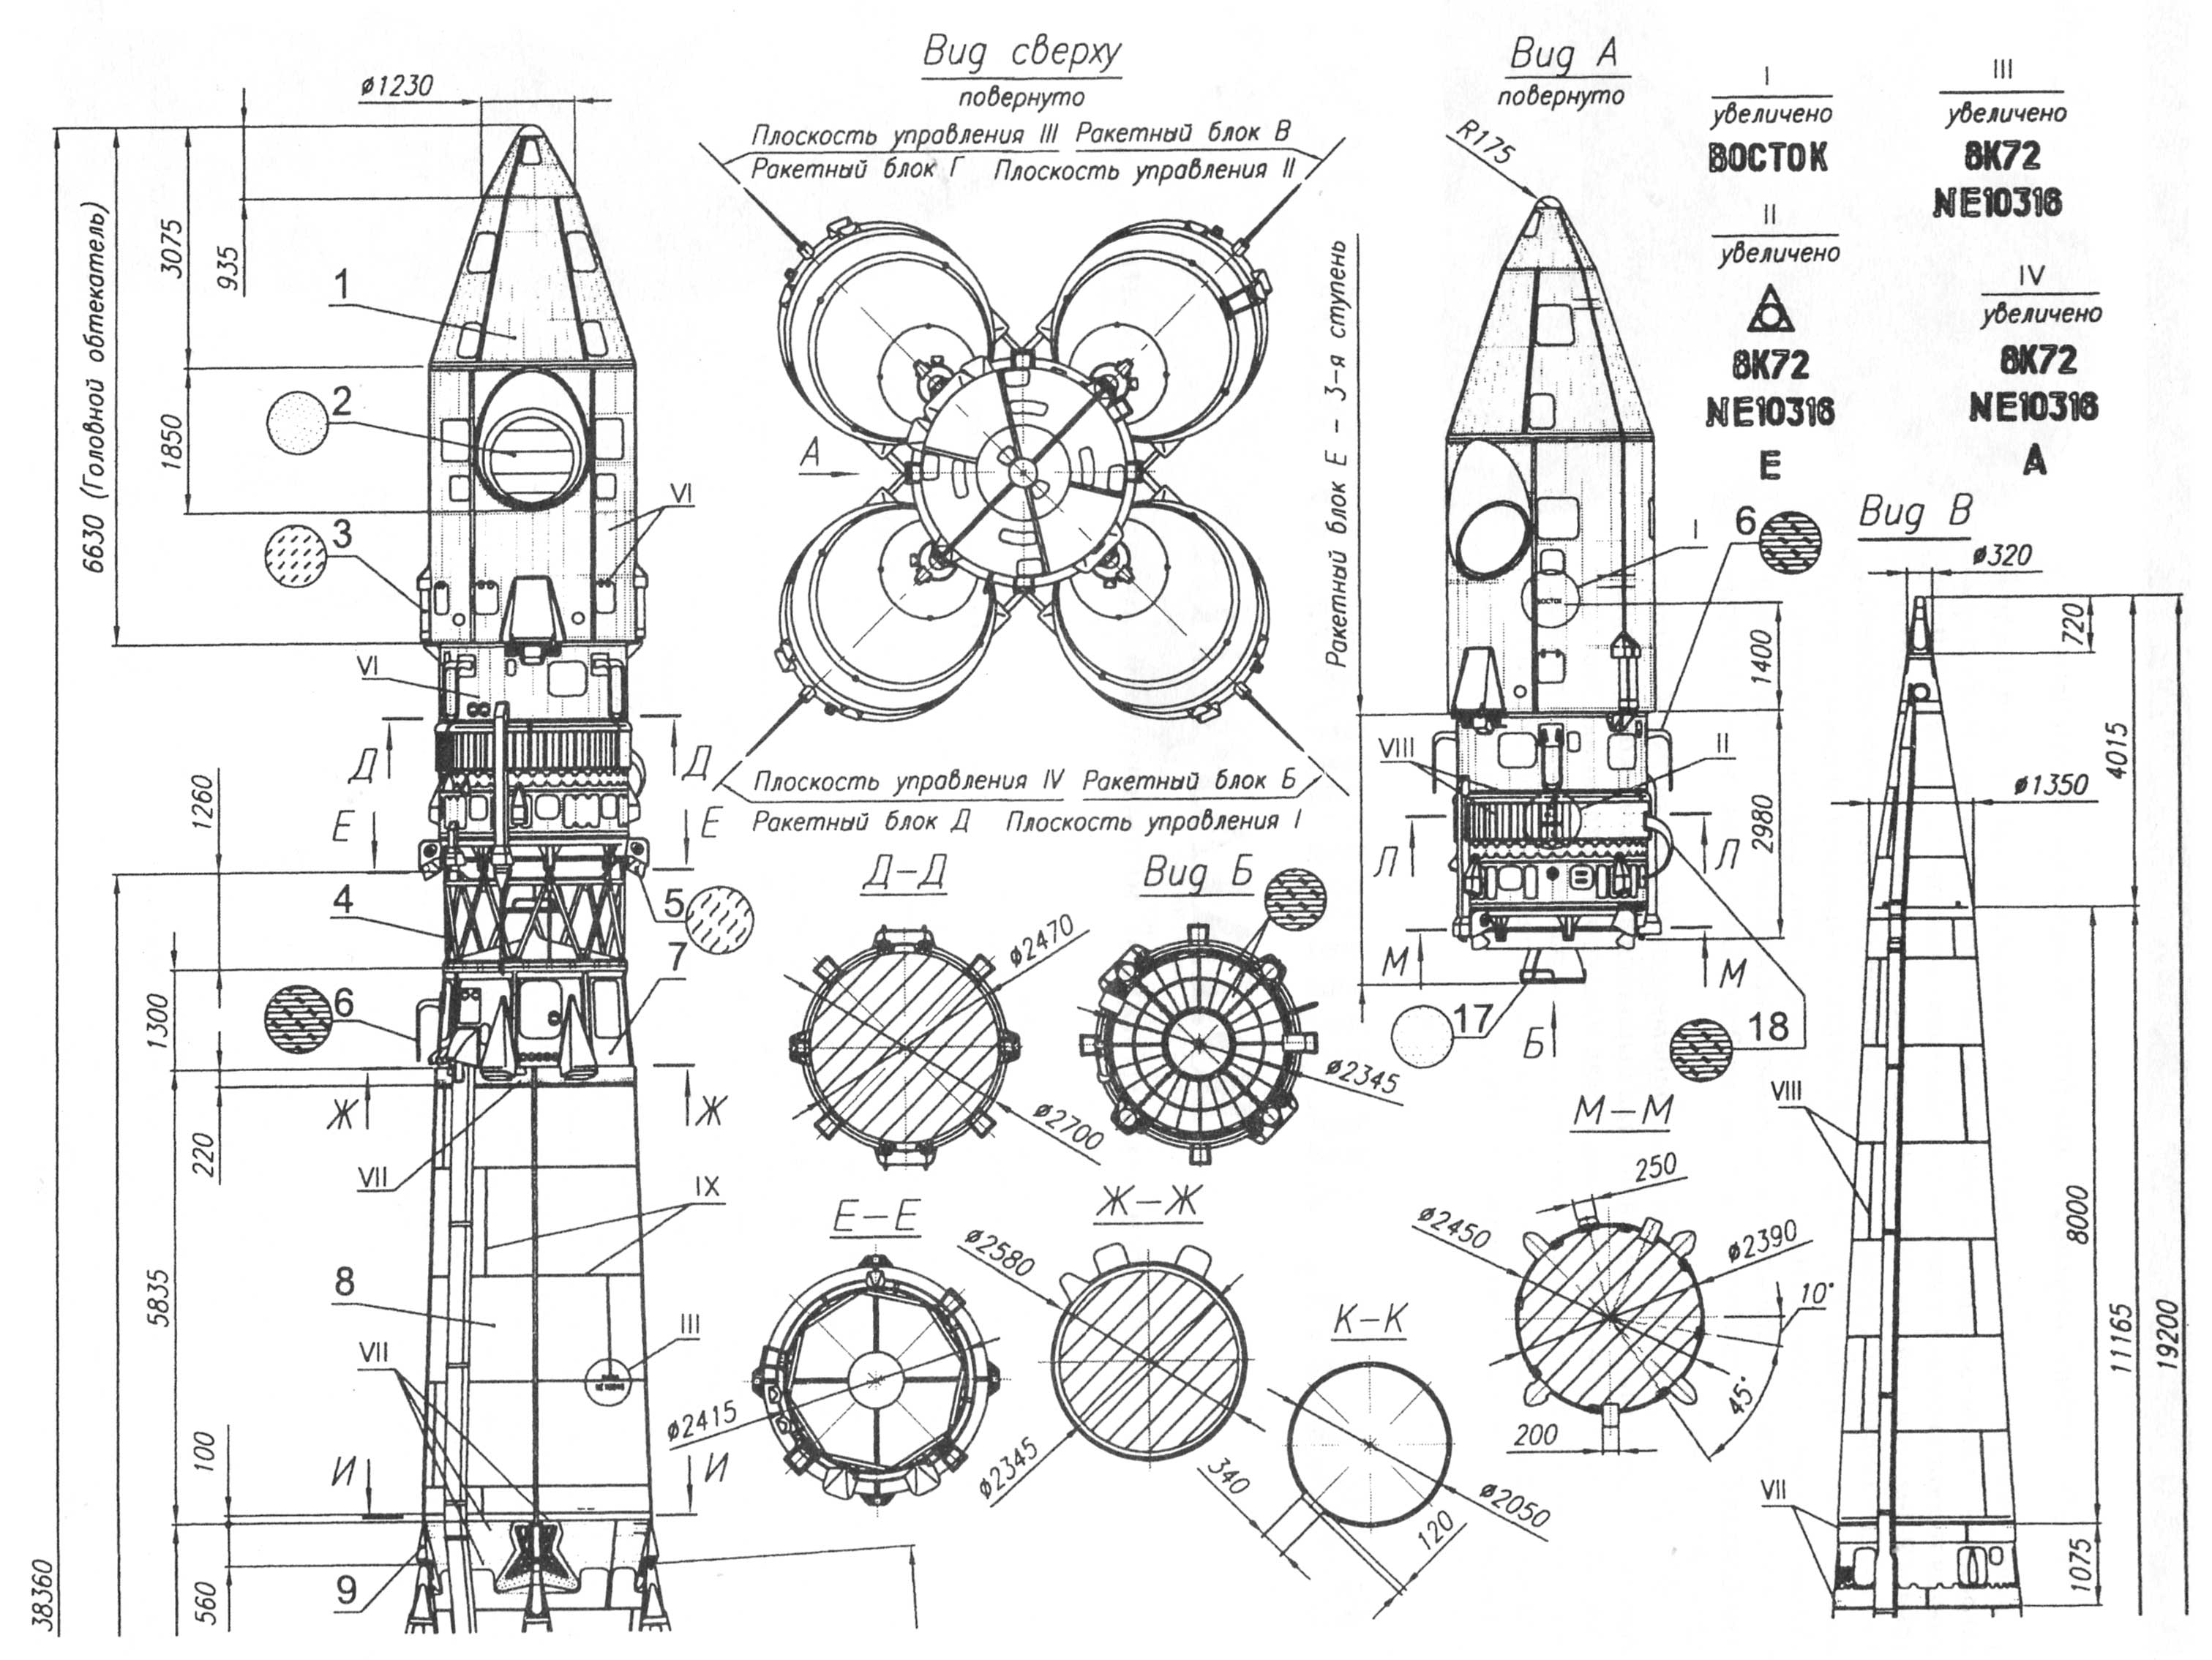 Ninfinger Productions: Space Modelers Email List 2004